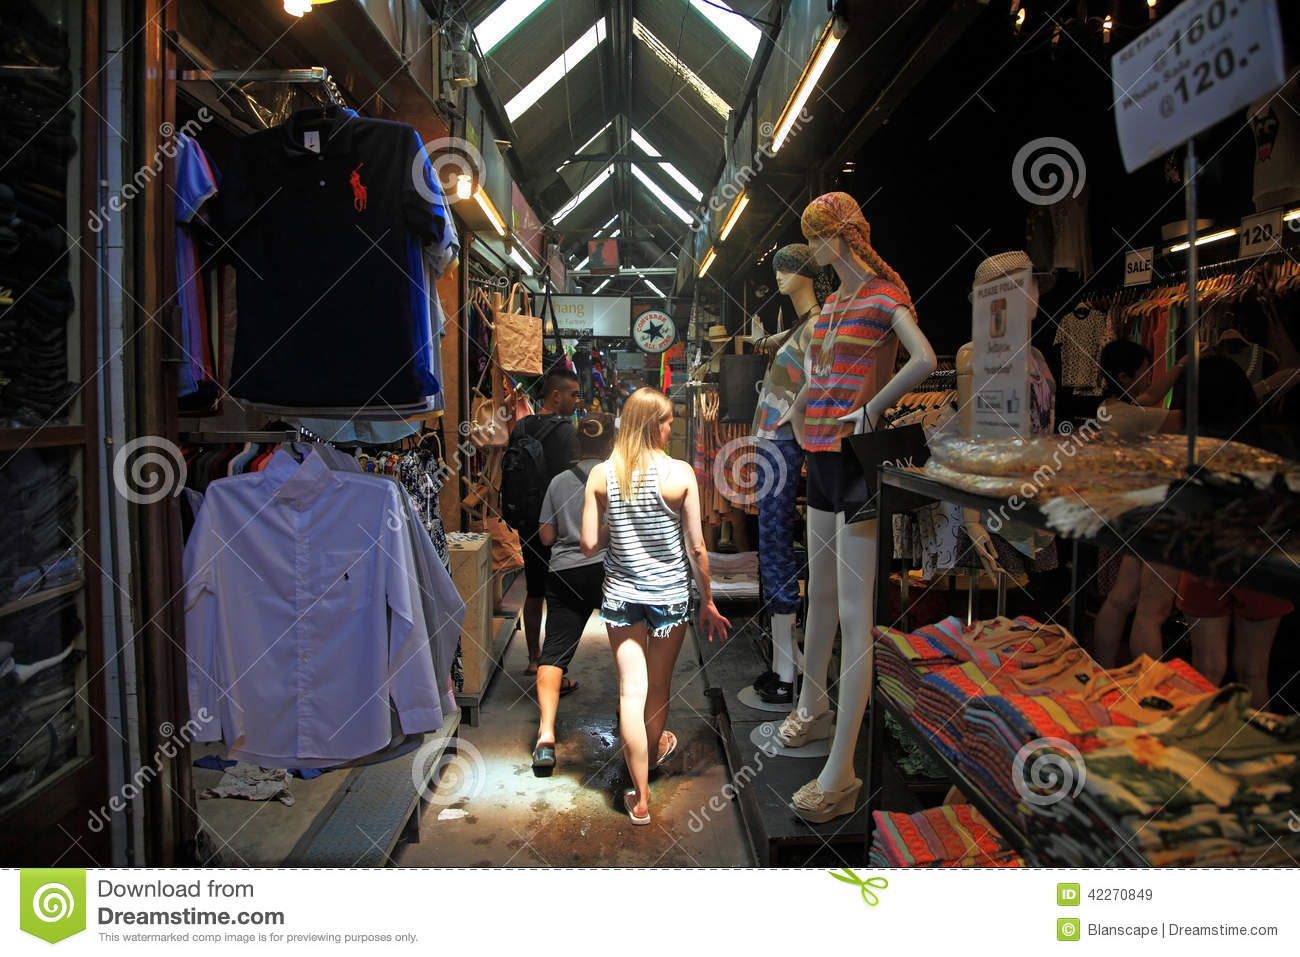 7d7fcd063ab BANGKOK, THAILAND - JULY 05, 2014: Unidentified foreign girl shopping at  Chatuchak weekend market. Here is the largest weekend market opened from  8am - 6pm ...